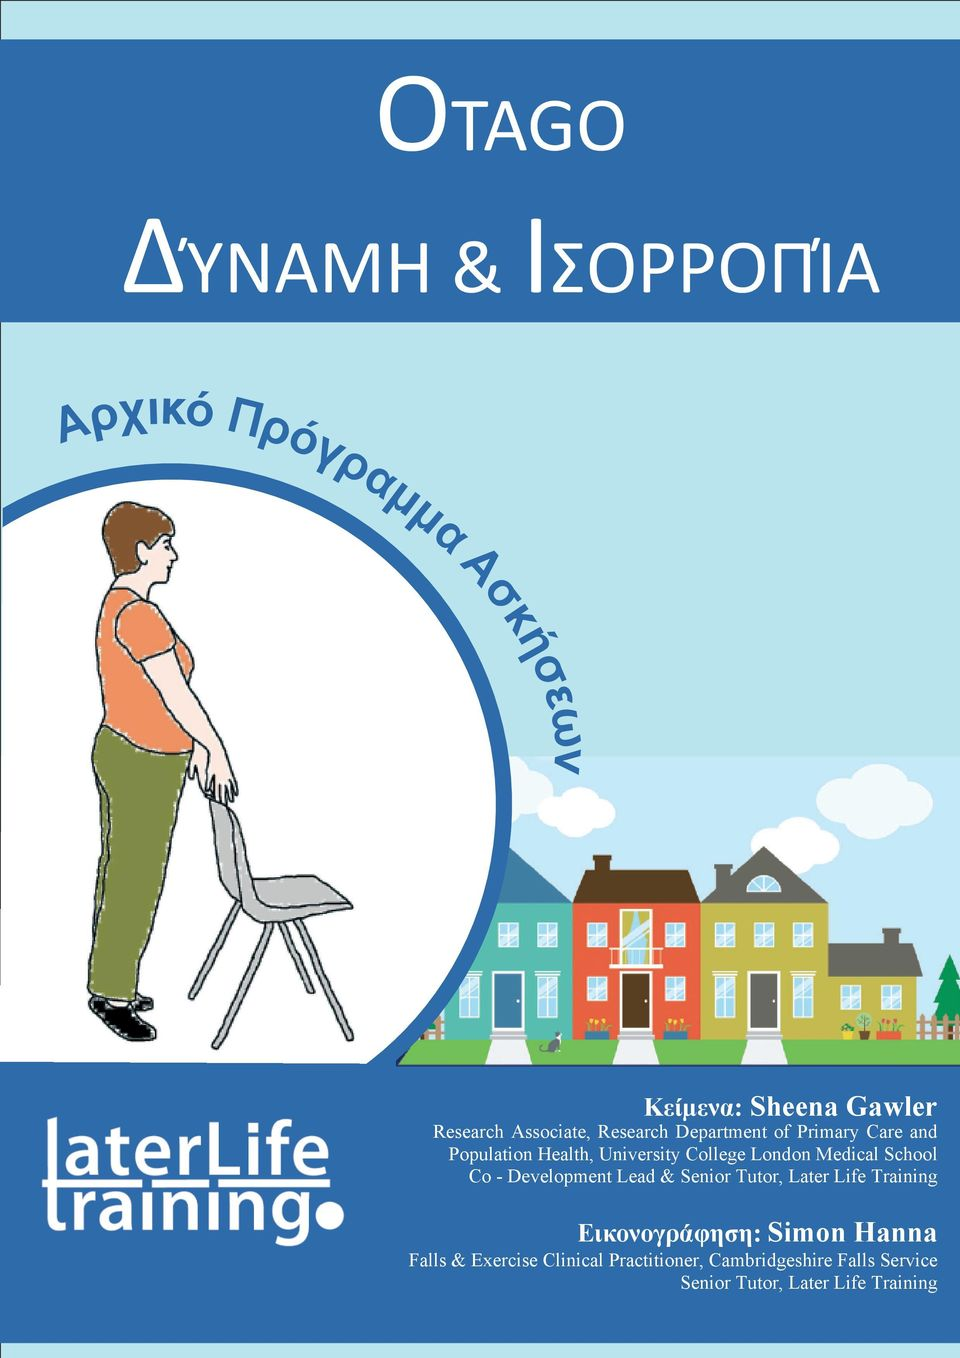 School Co - Development Lead & Senior Tutor, Later Life Training Εικονογράφηση: Simon Hanna